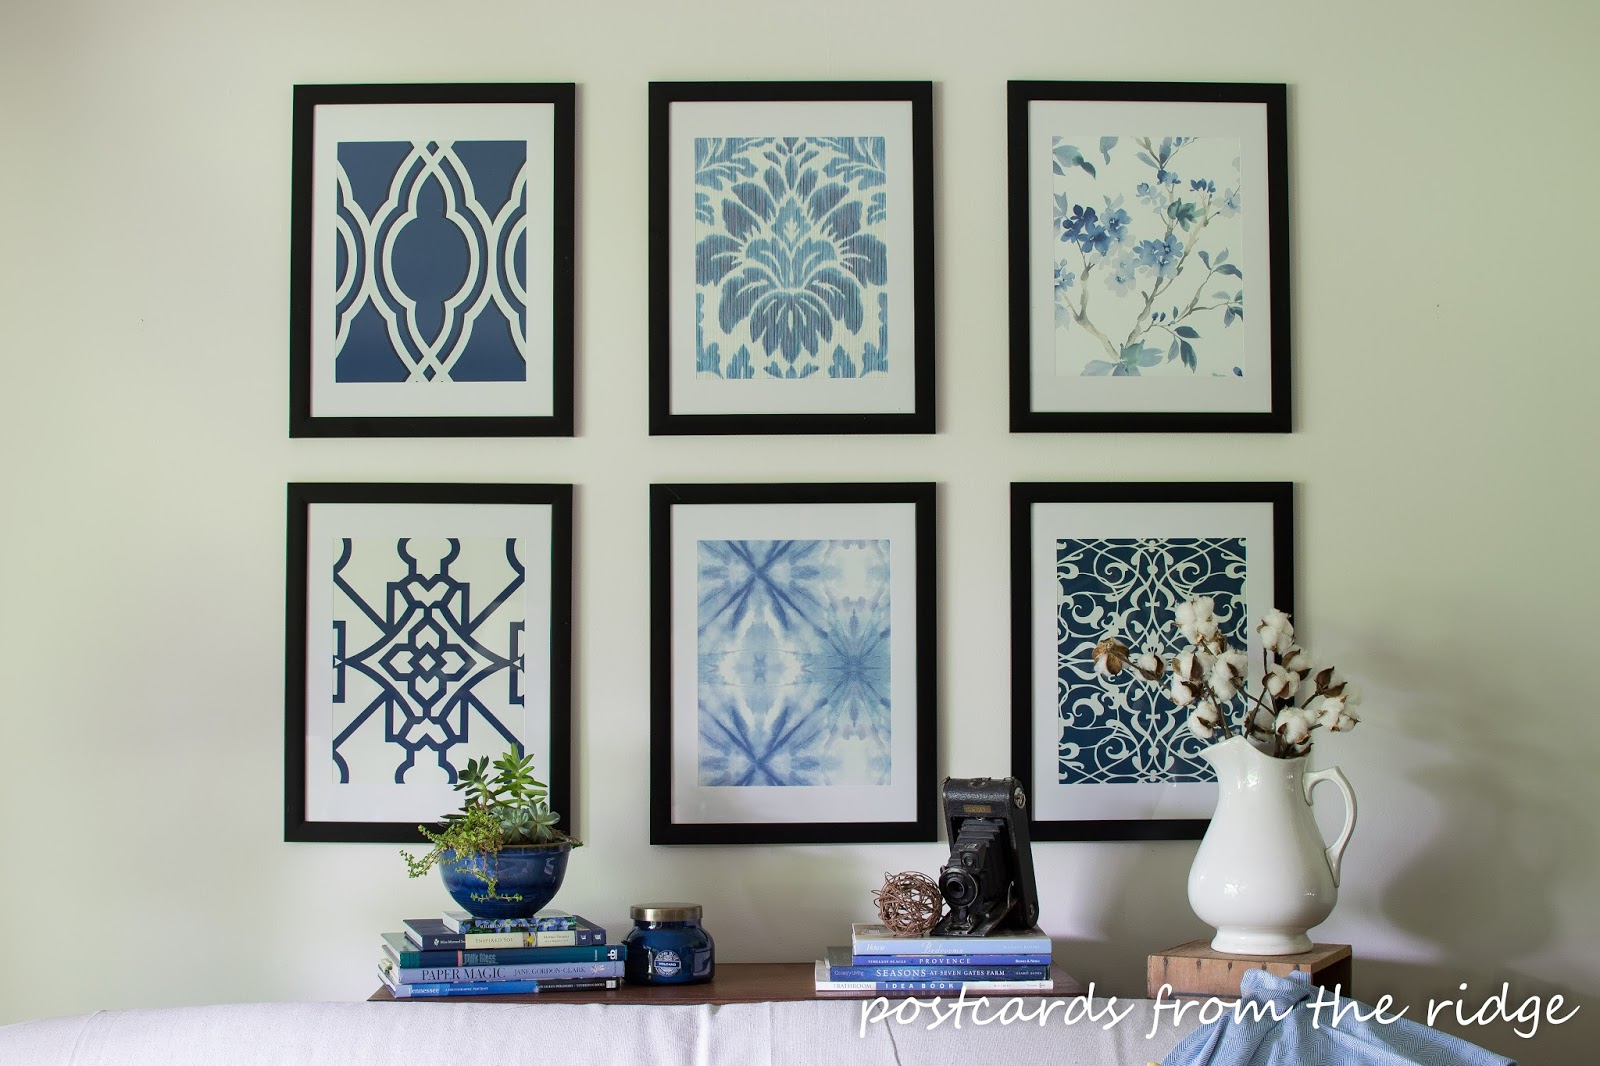 Affordable Diy Wall Decor : Affordable diy artwork ideas postcards from the ridge